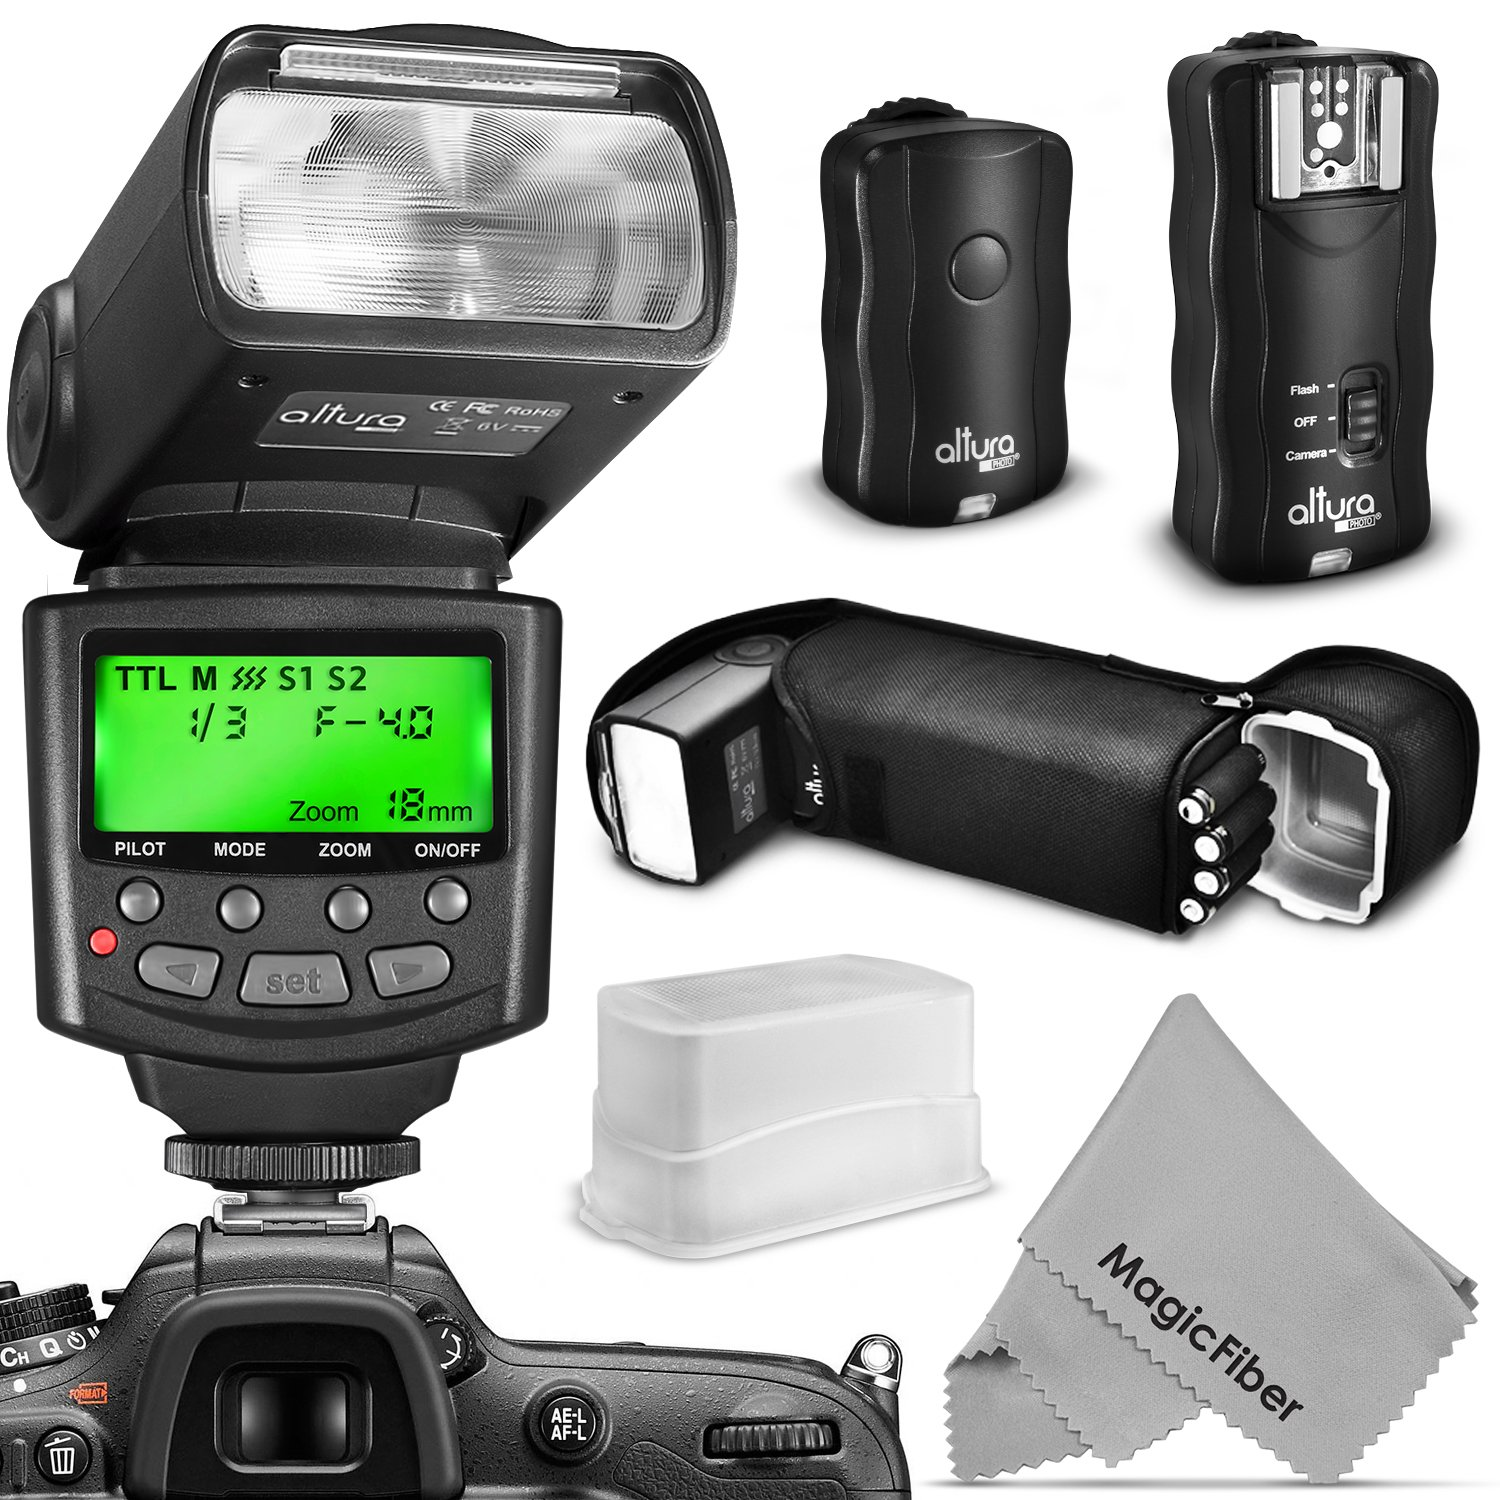 Buy Altura Photo Professional Flash Kit For Canon Dslr With E Ttl